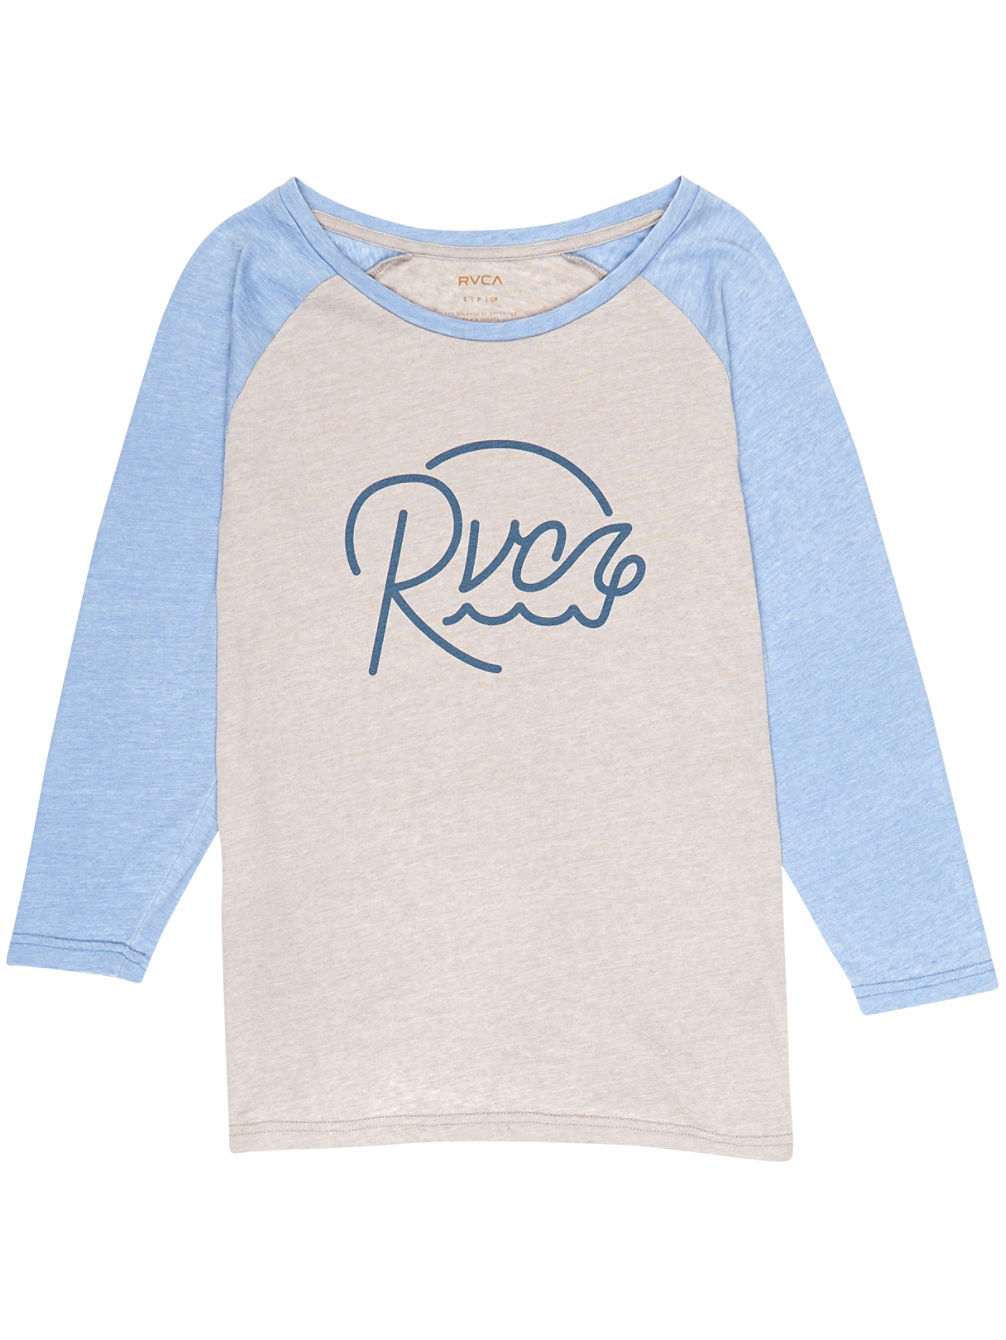 At Sea Raglan T-Shirt